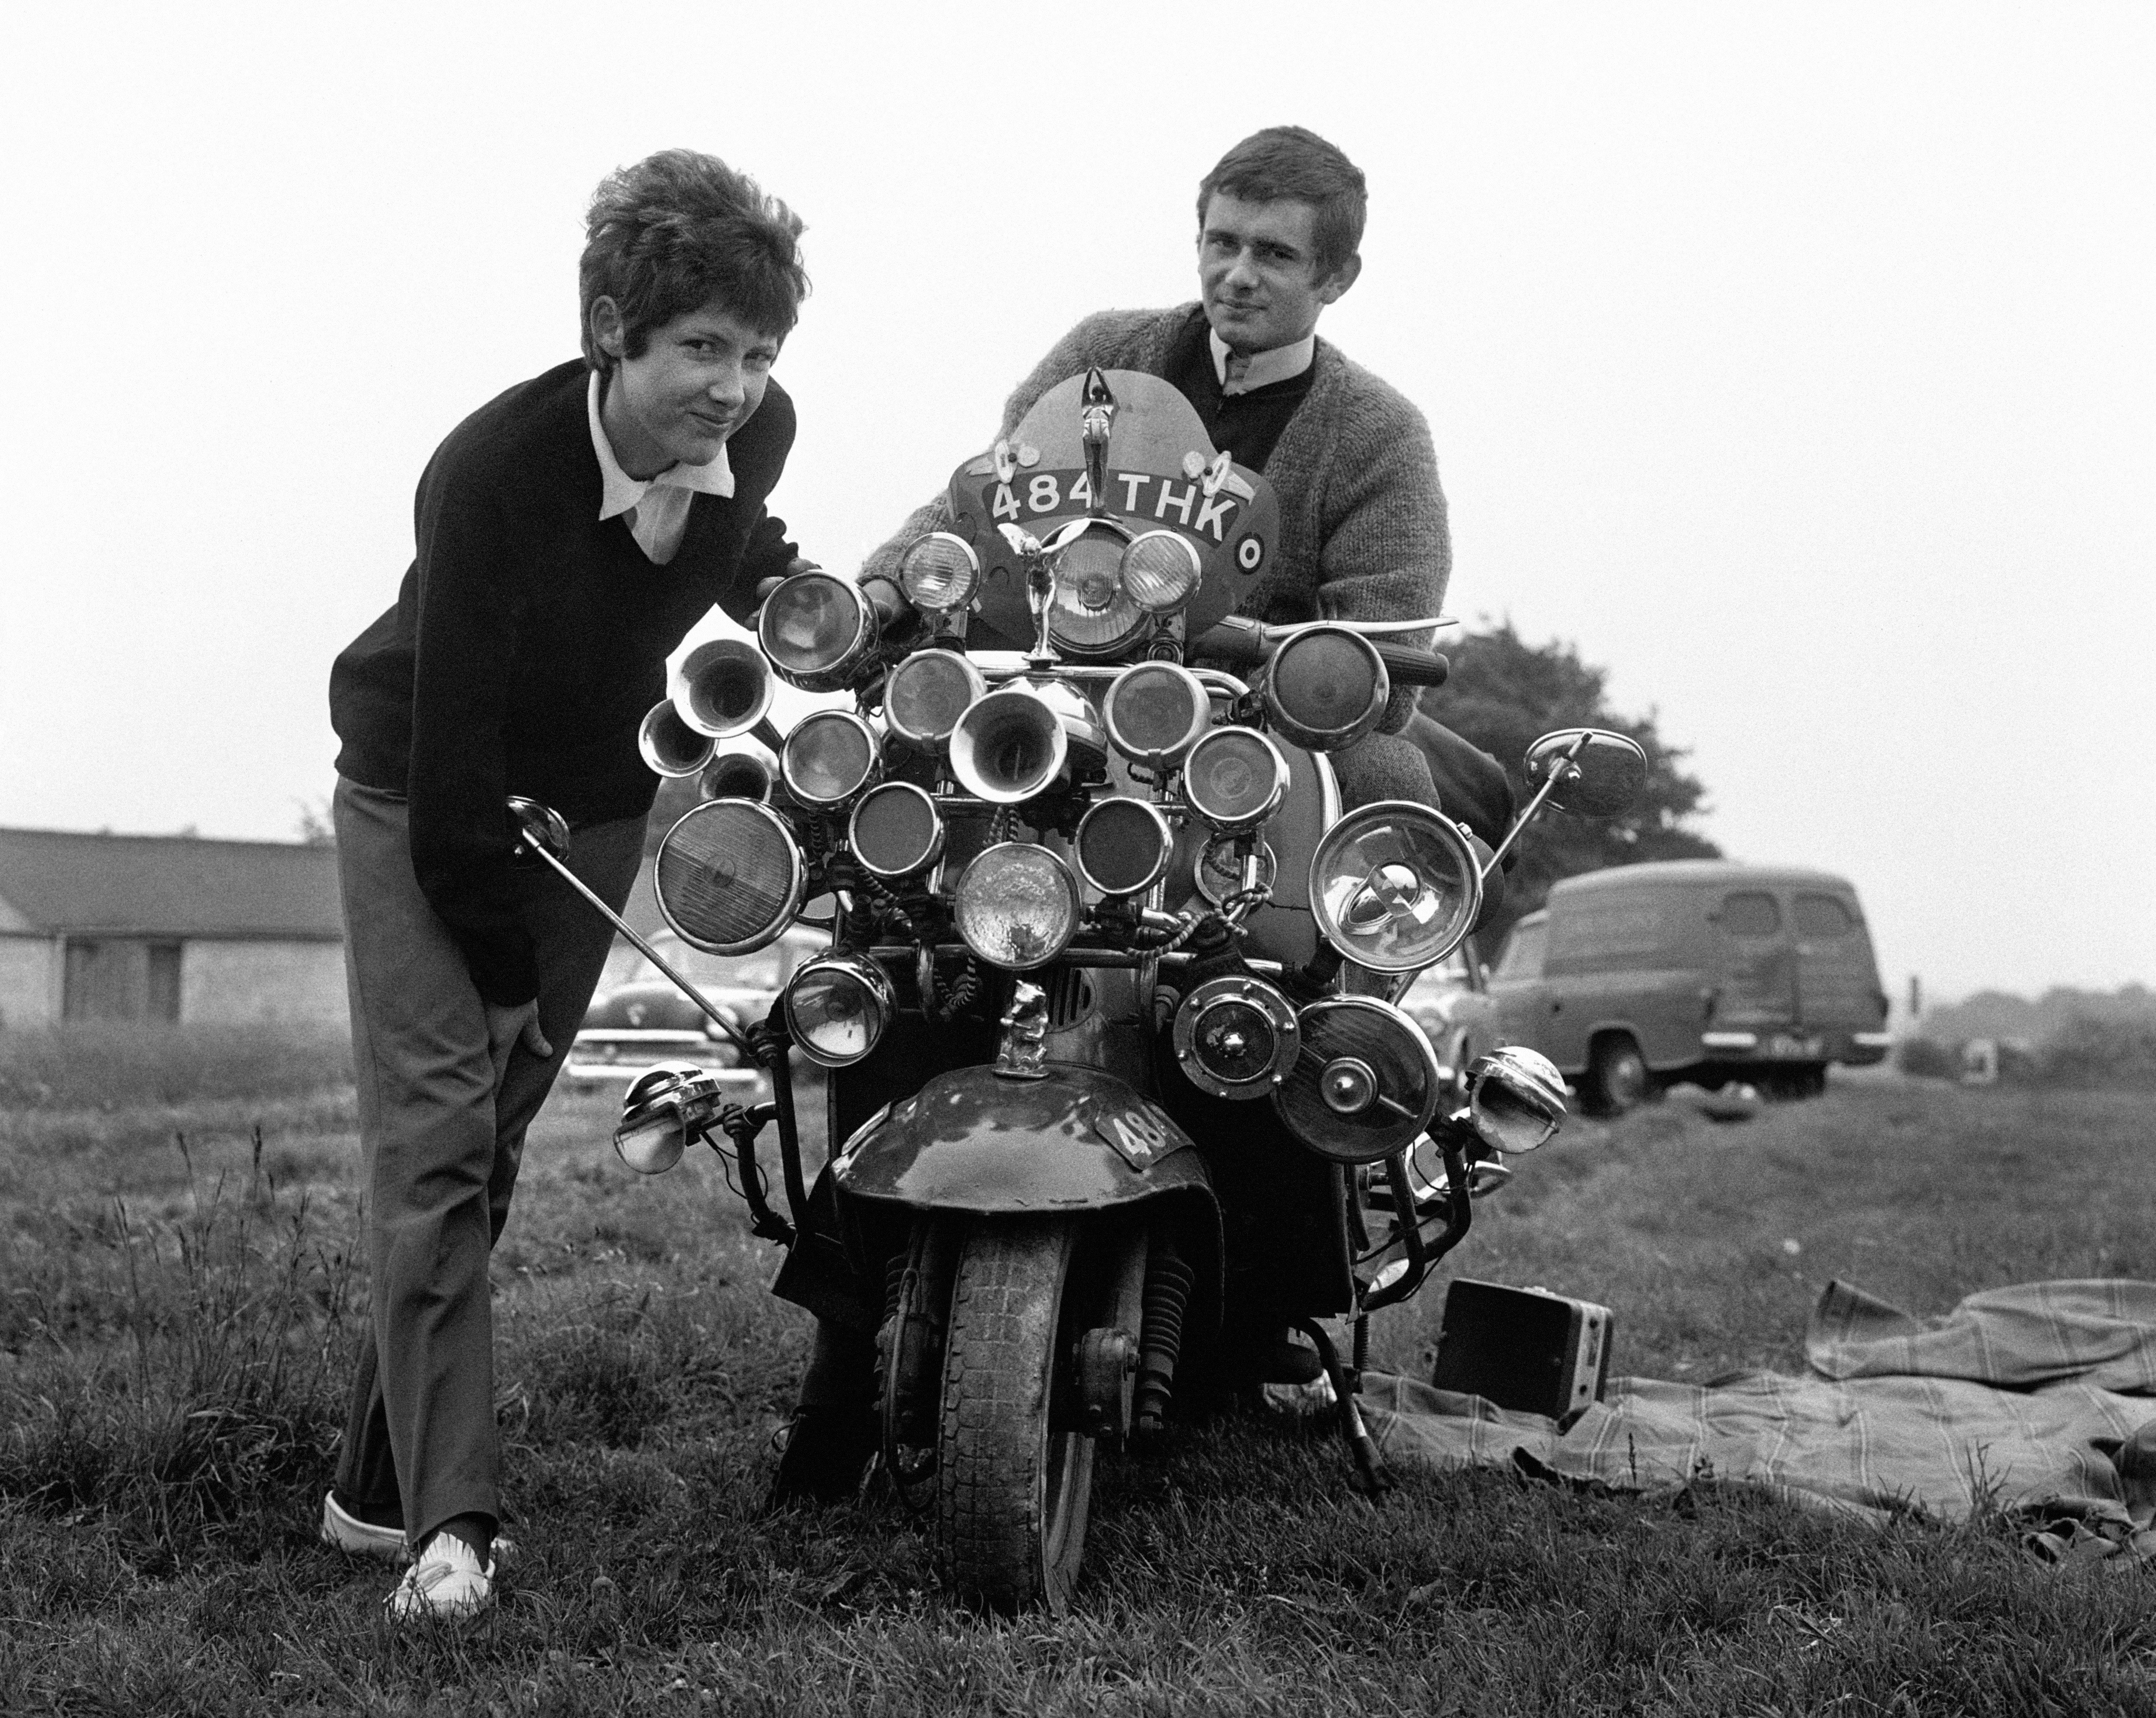 Mods And Rockers Fighting For Fashion And Fun In 1960s ...